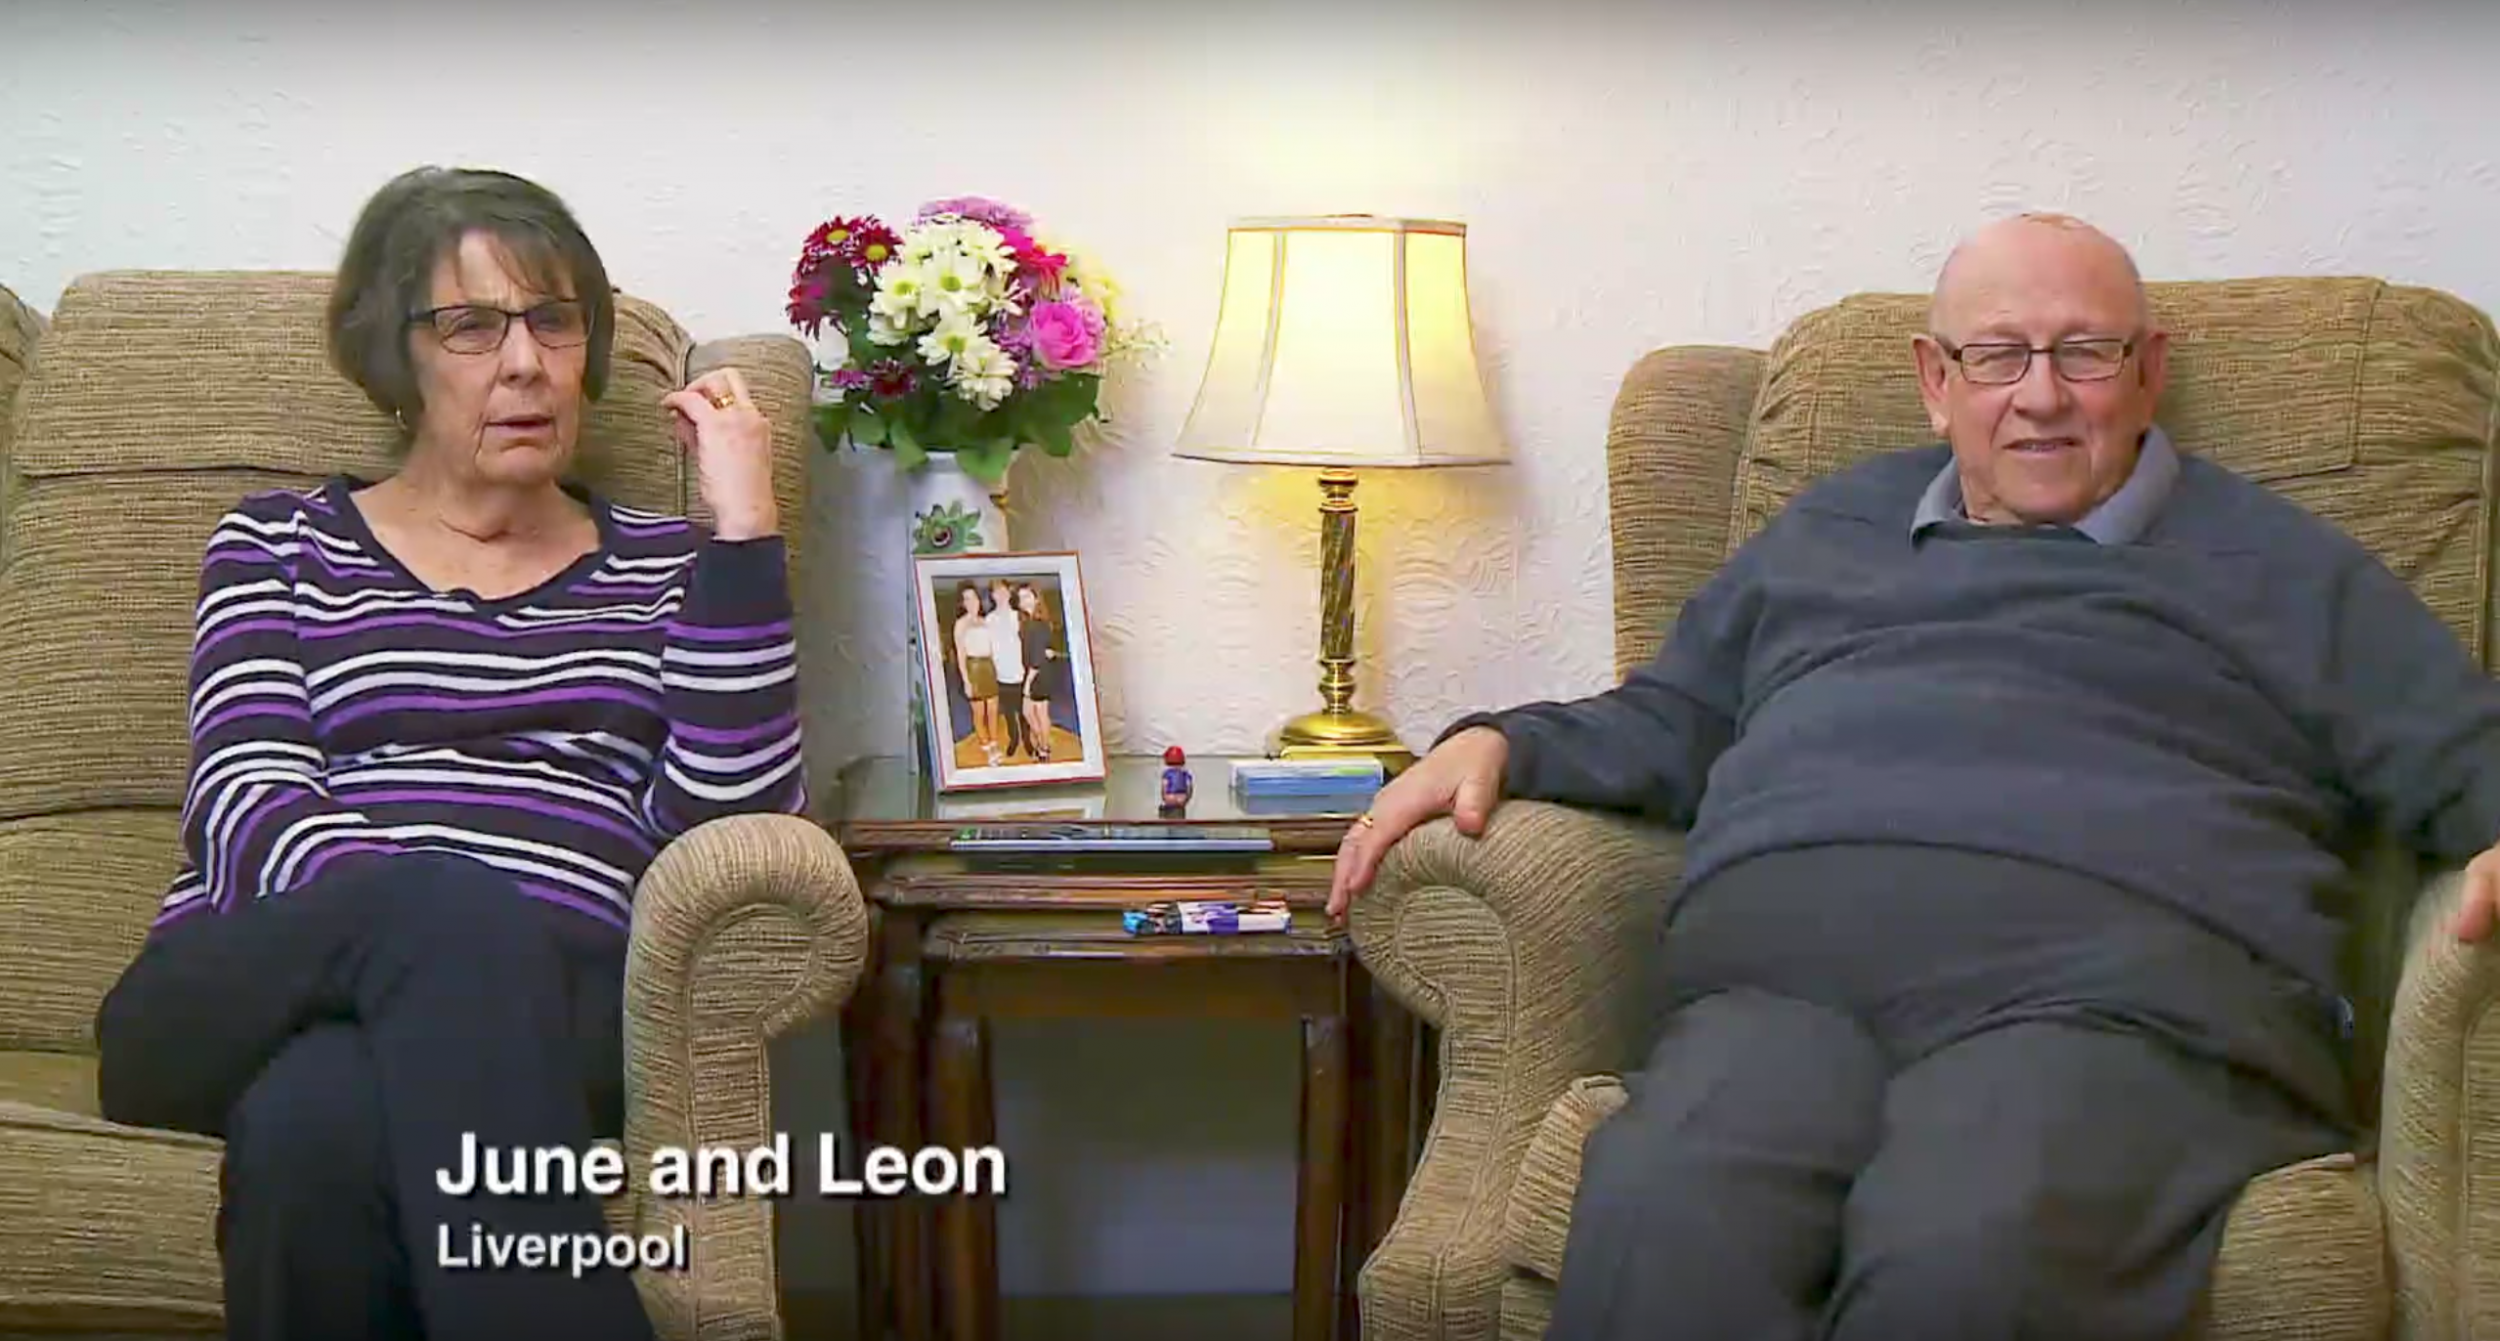 Gogglebox viewers disappointed by show's tribute to June Bernicoff following her death